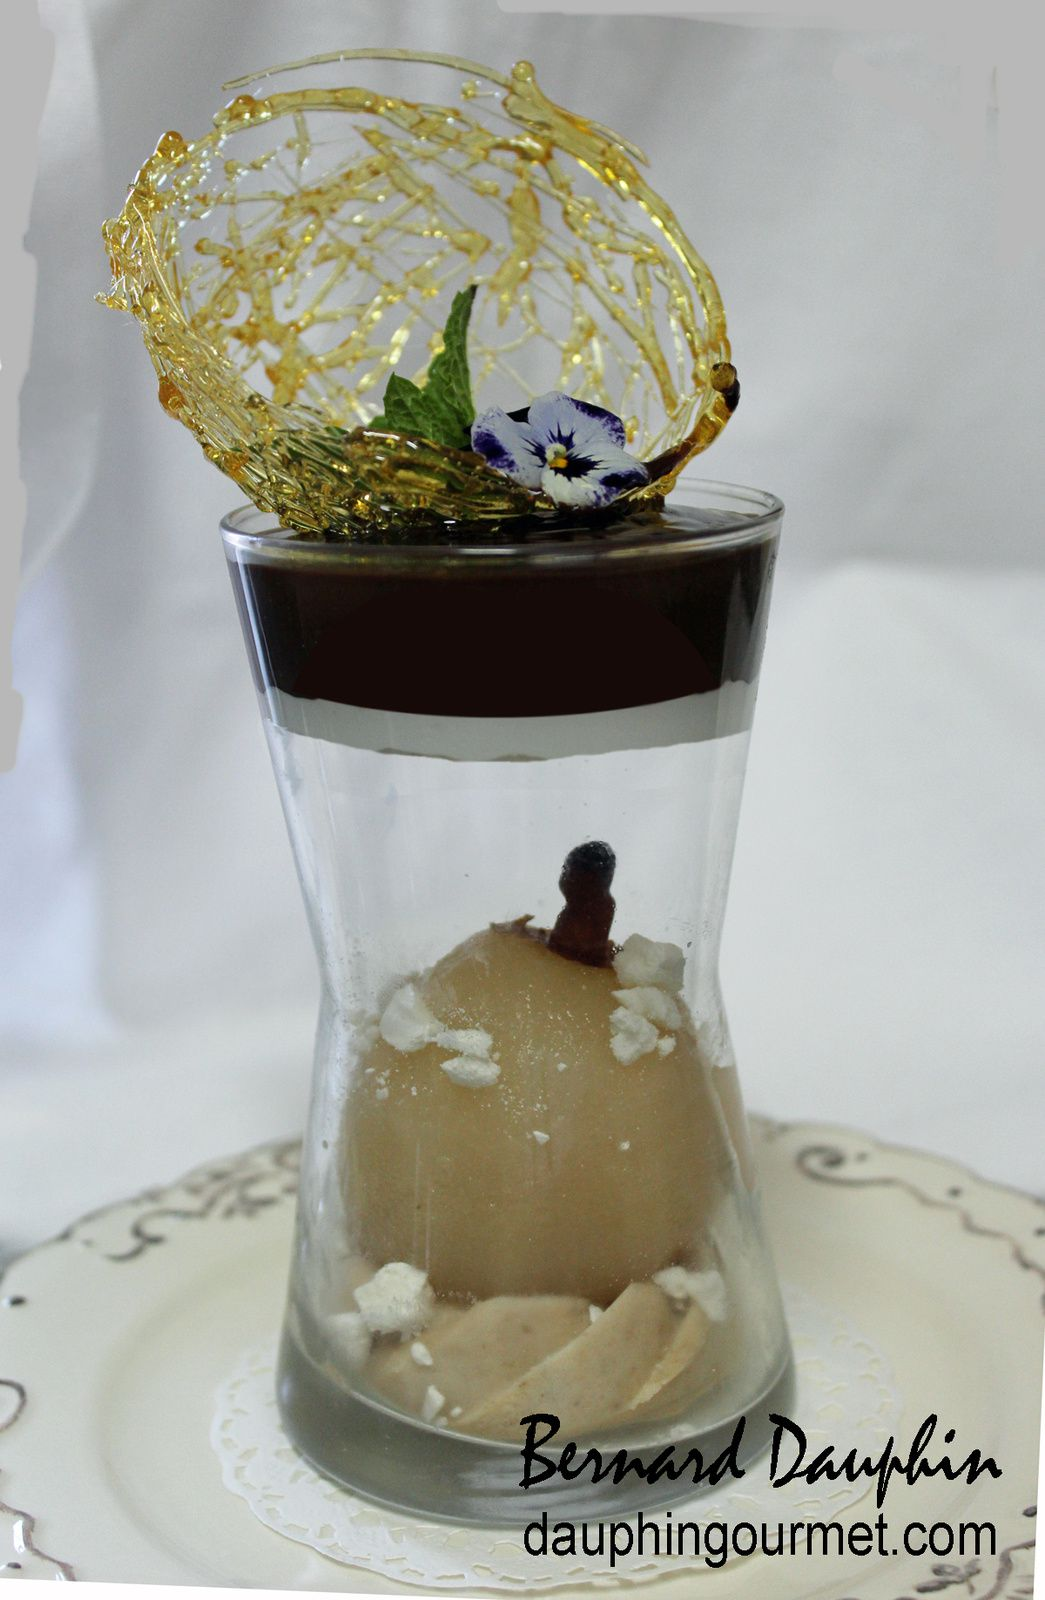 VERRINE POIRE-MARRONS EN SUSPENSION, FAÇON BELLE-HELENE